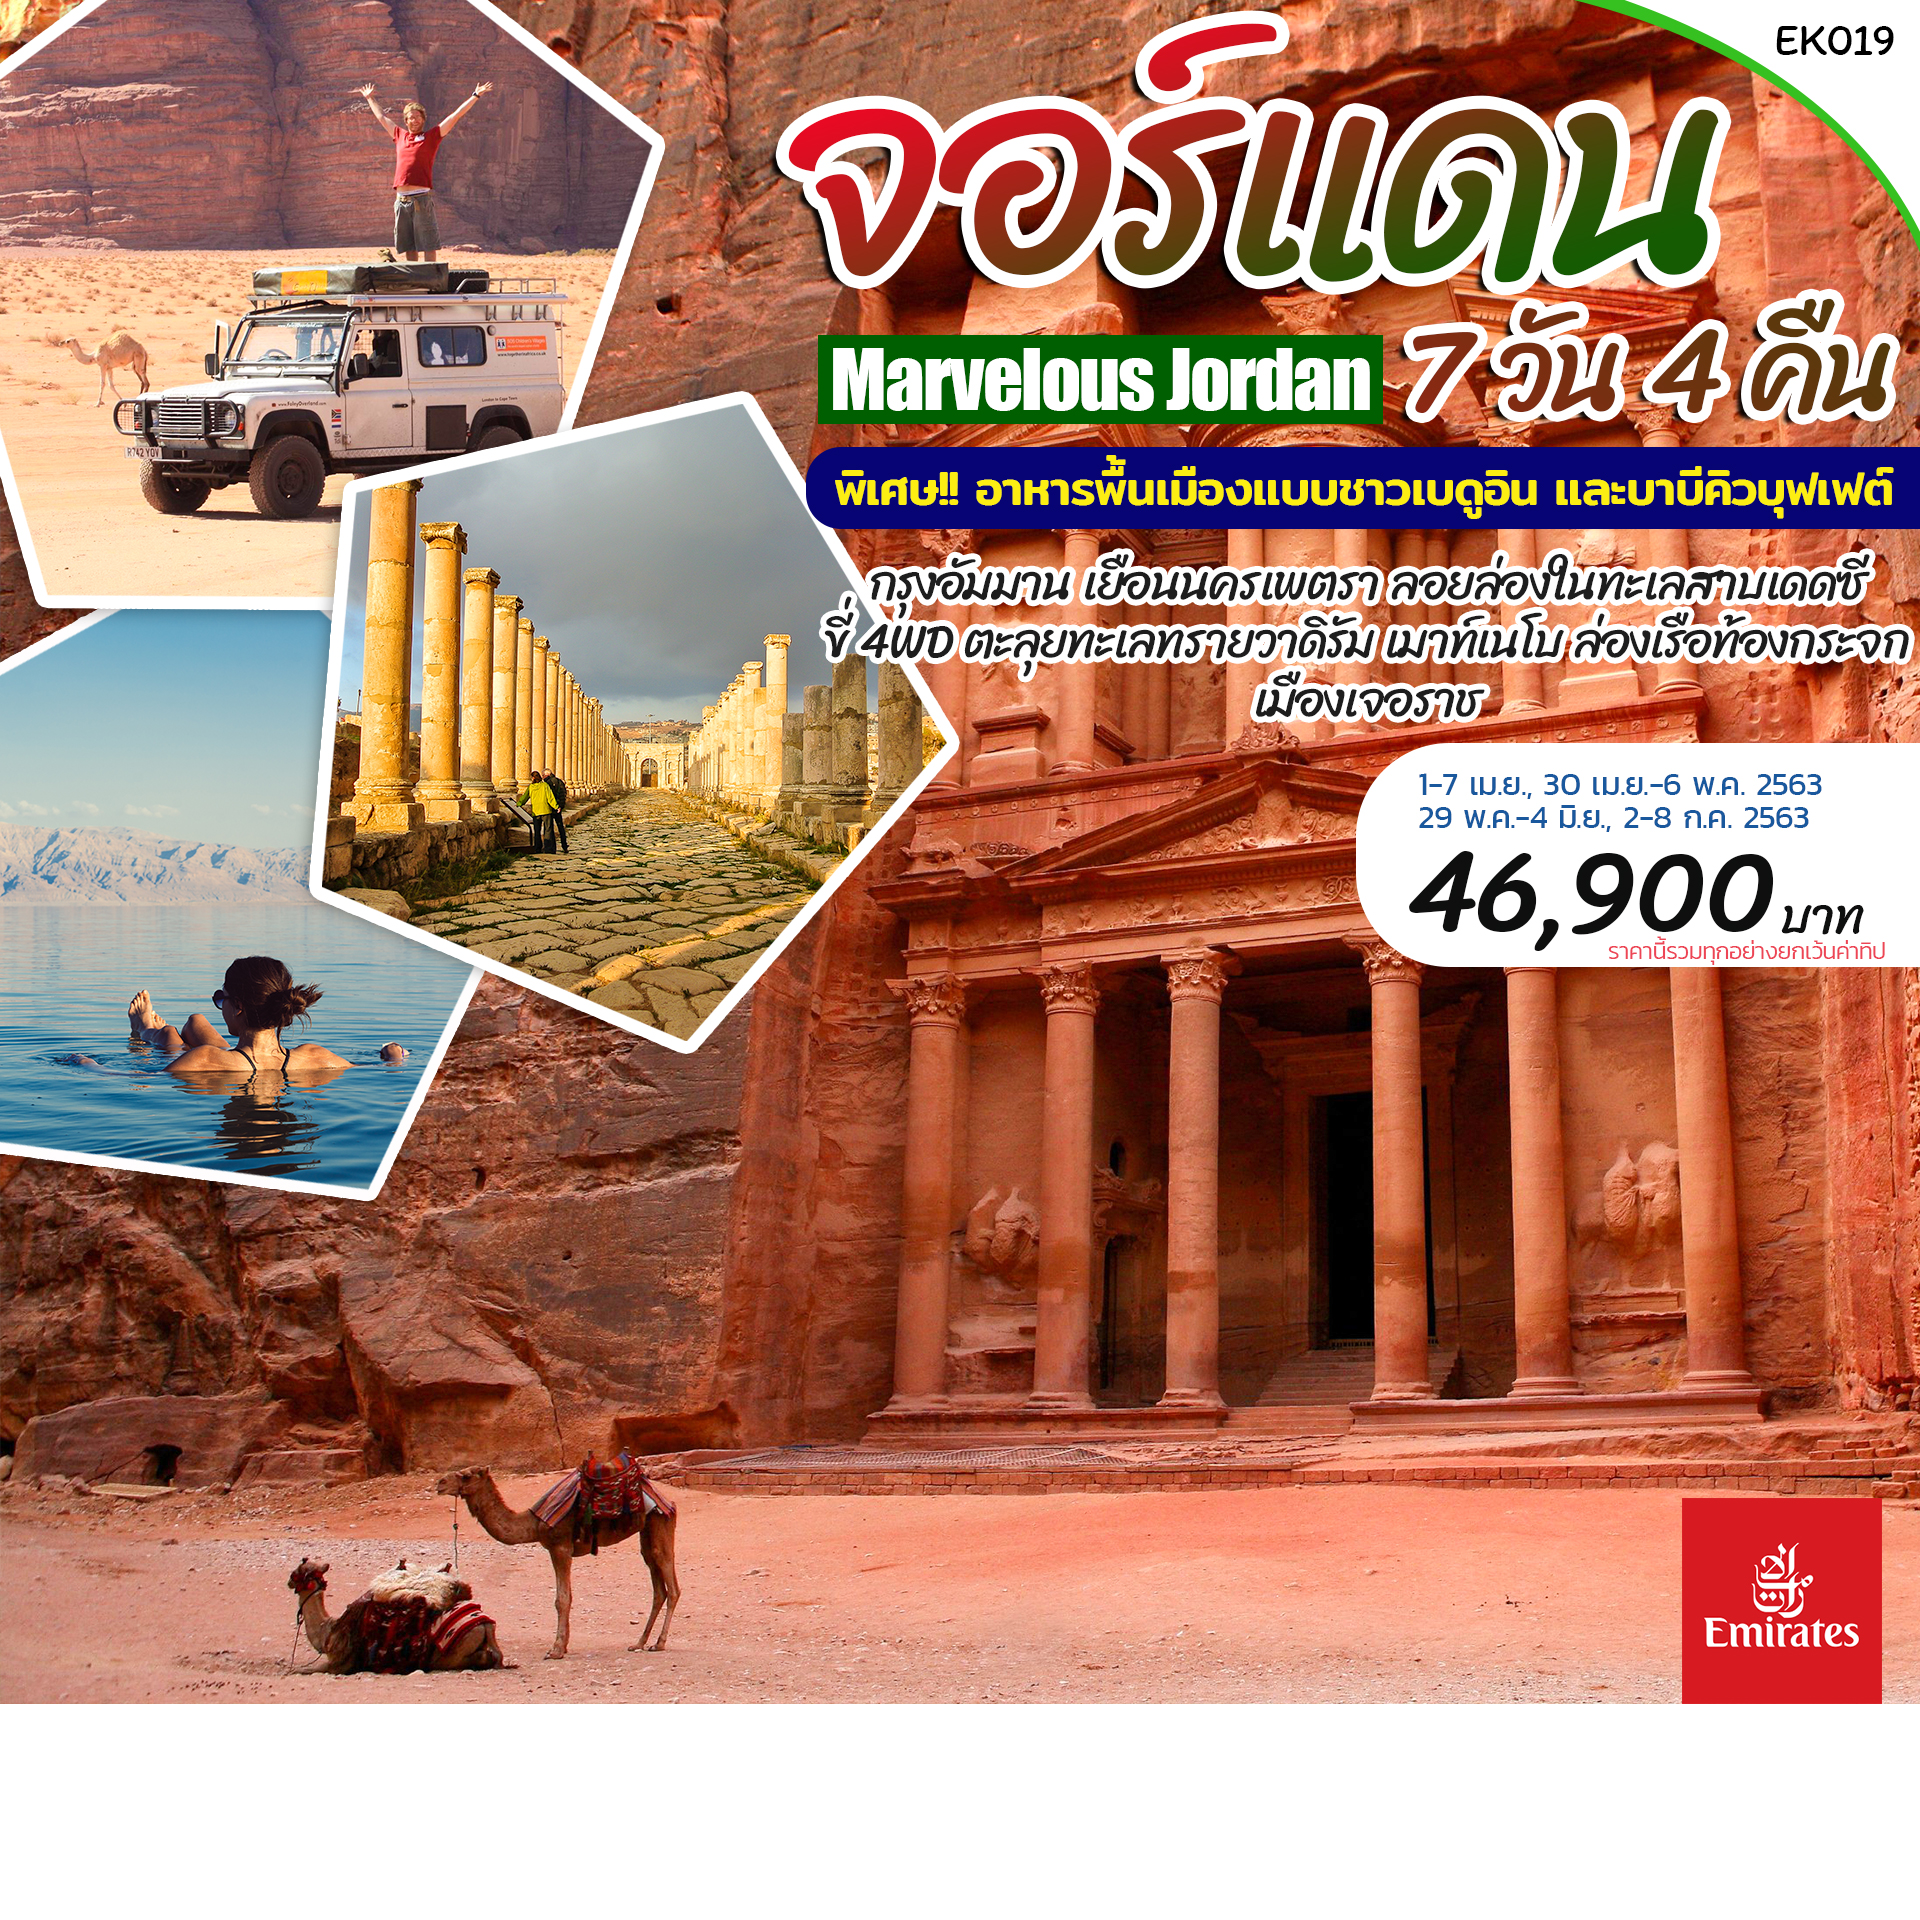 จอร์เจีย-Marvelous-Jordan-7D4N(APR-JUL20)(EK019)